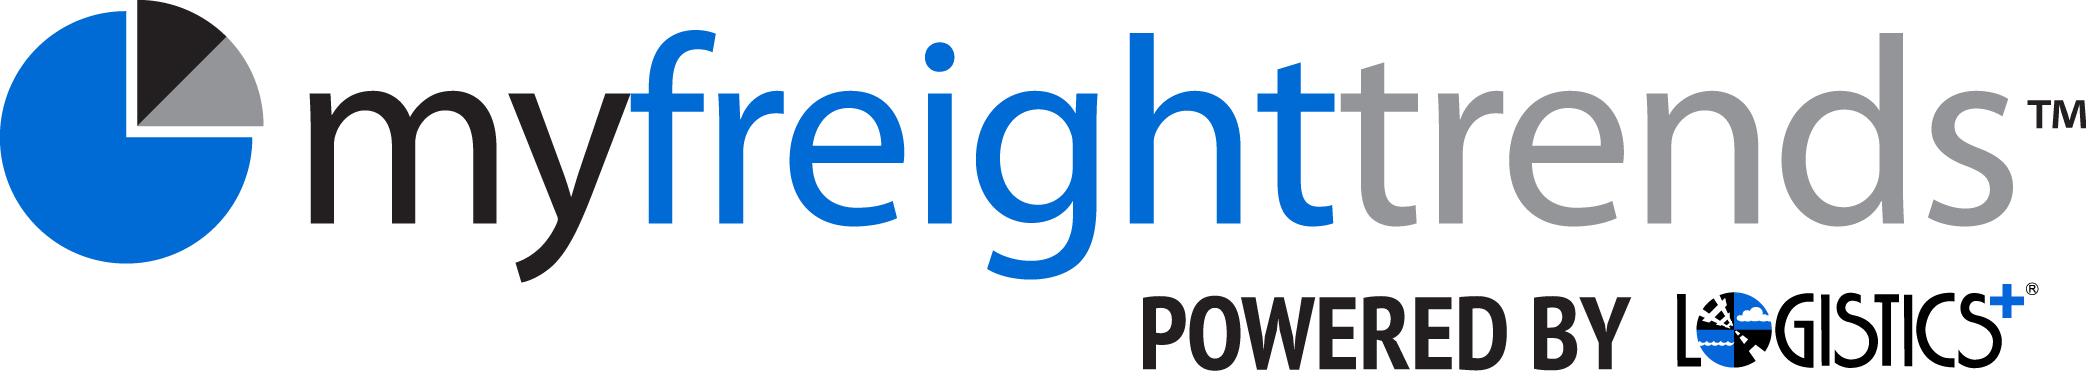 MyFreightTrends Logo Powered by Logistics Plus